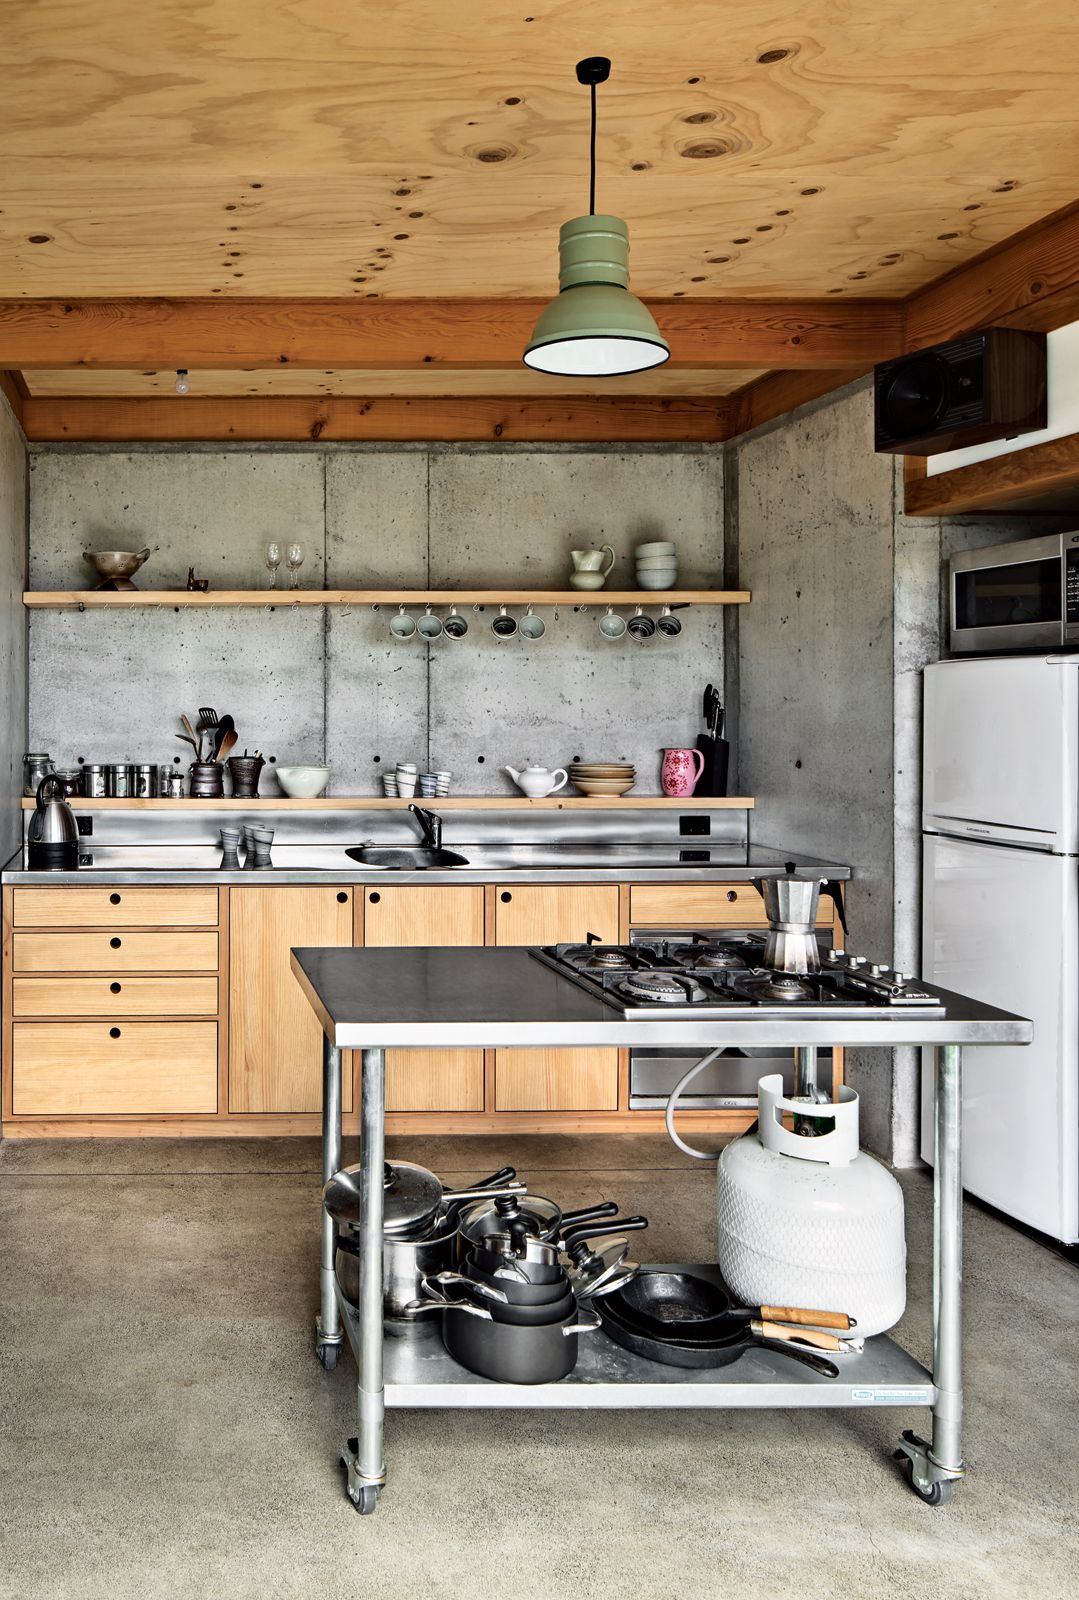 Smart Designs for Small Kitchens | Dwell; This home in New Zealand ...